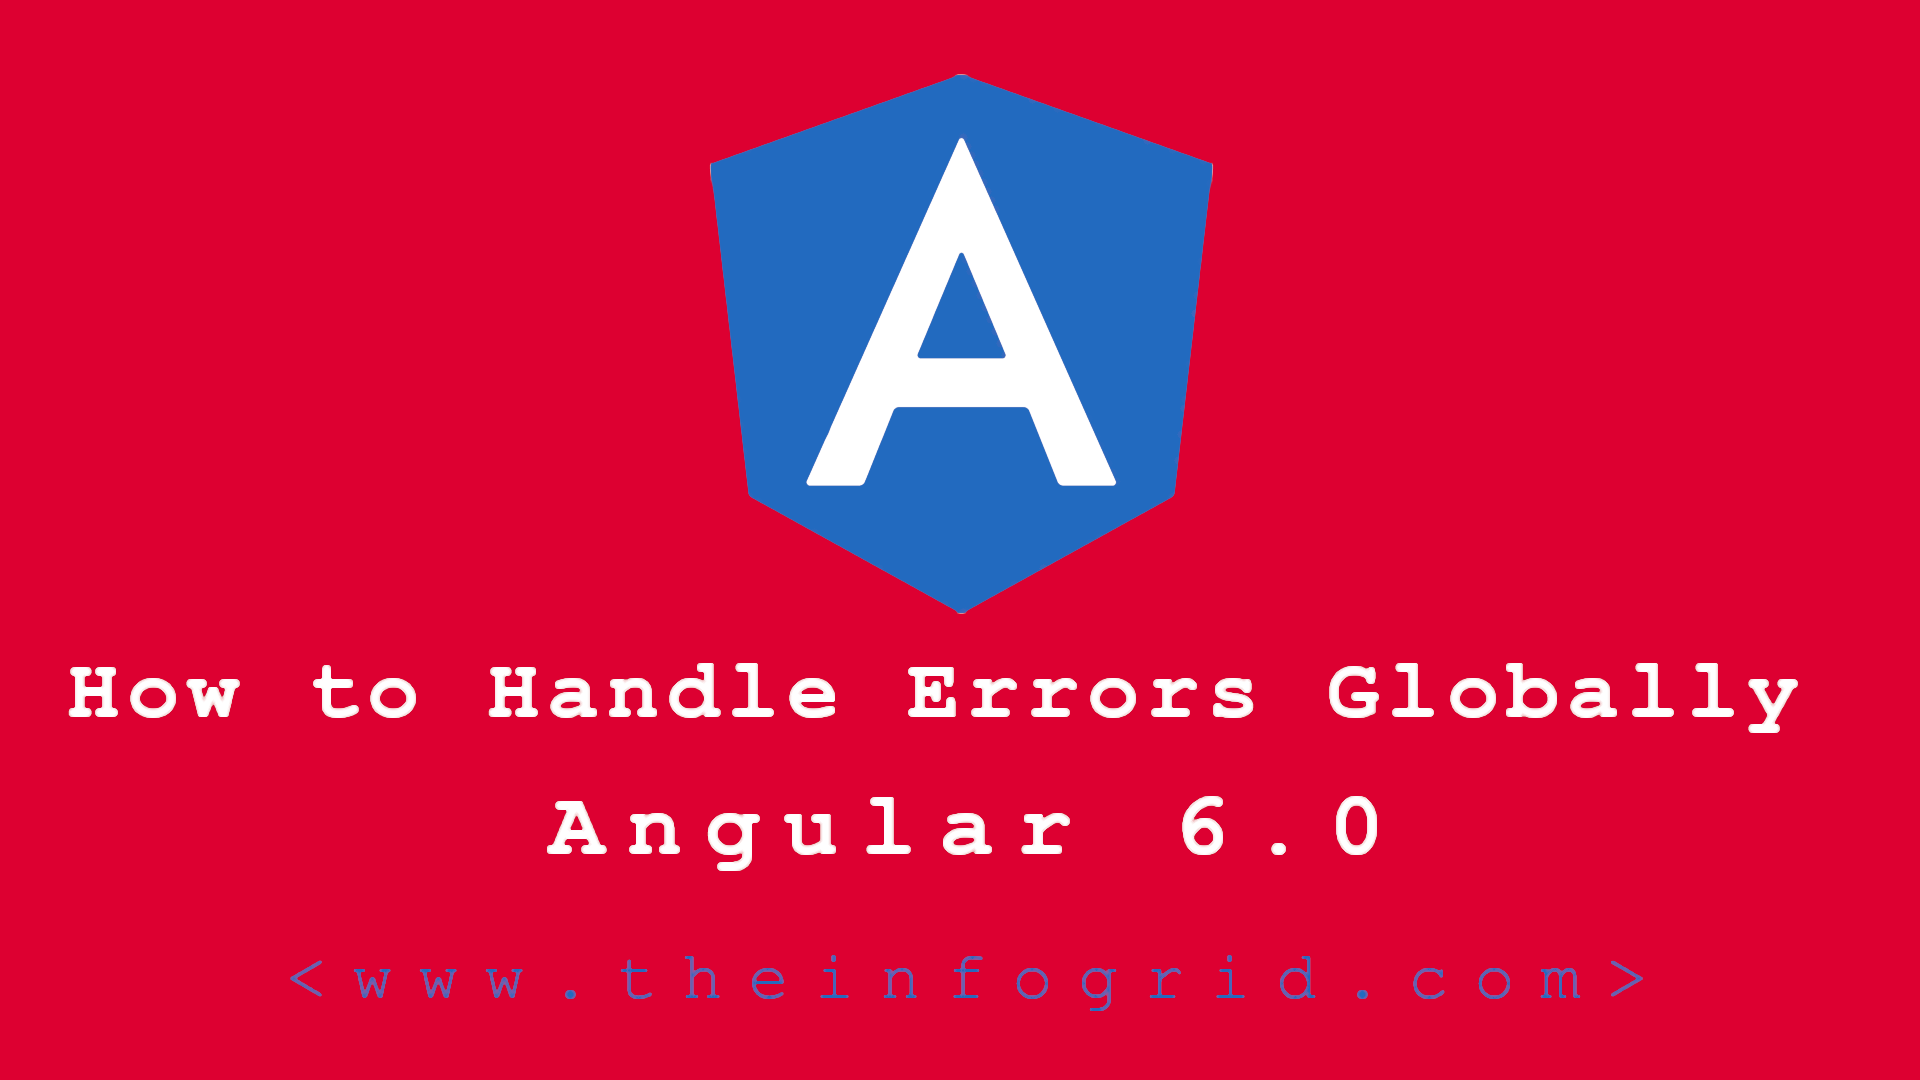 How to Handle Errors Globally in Angular